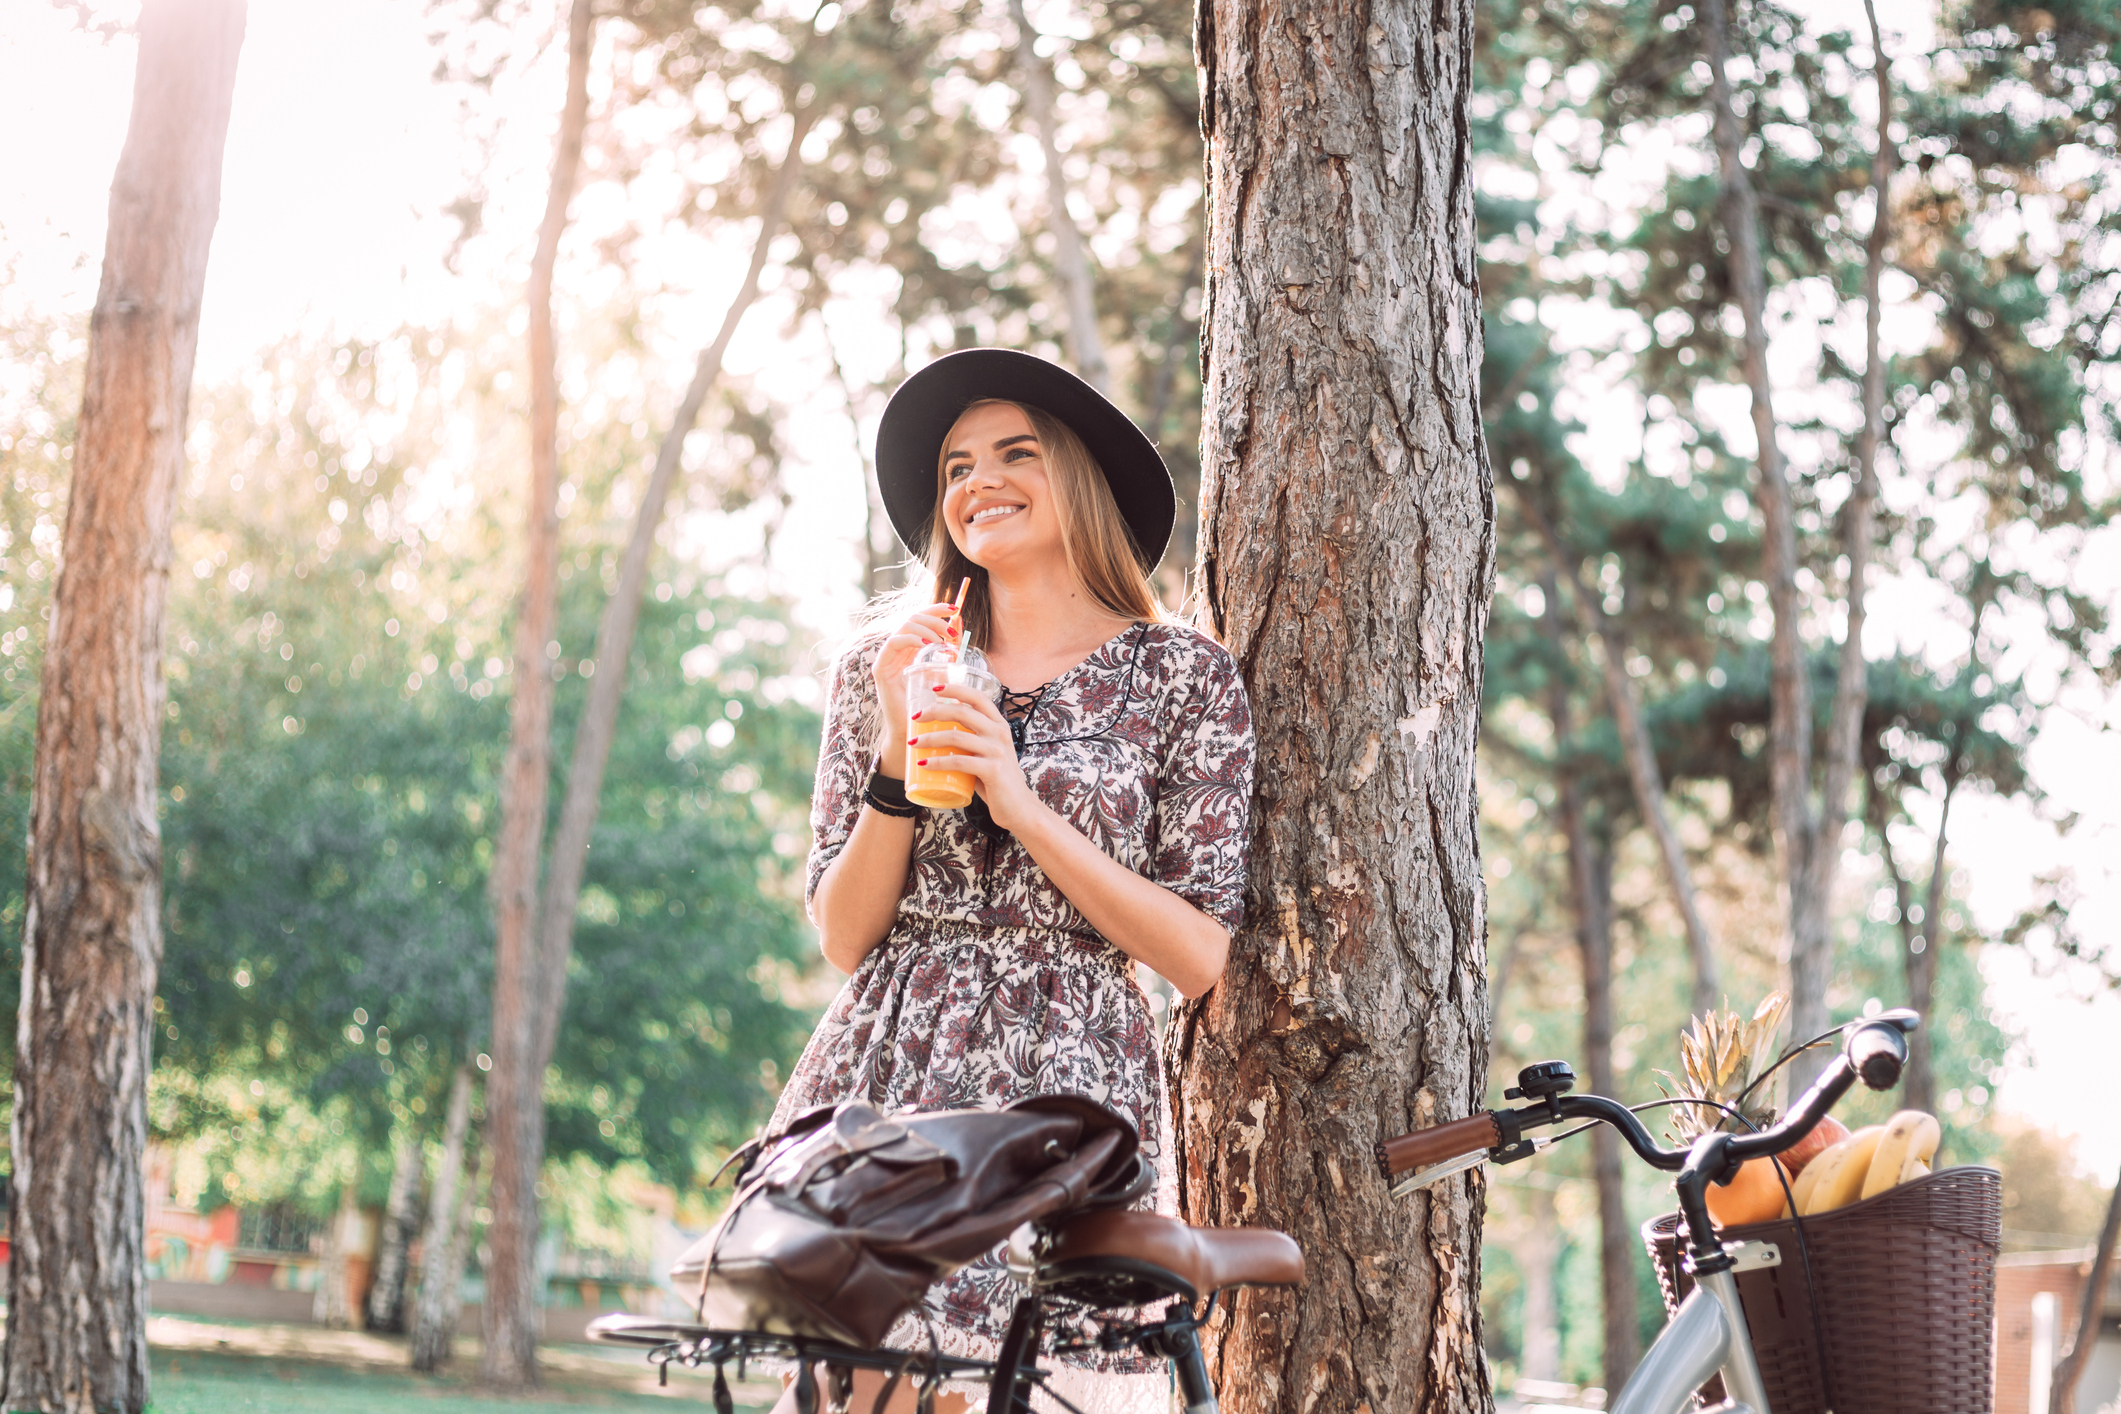 Woman is leaning against a tree while drinking orange juice